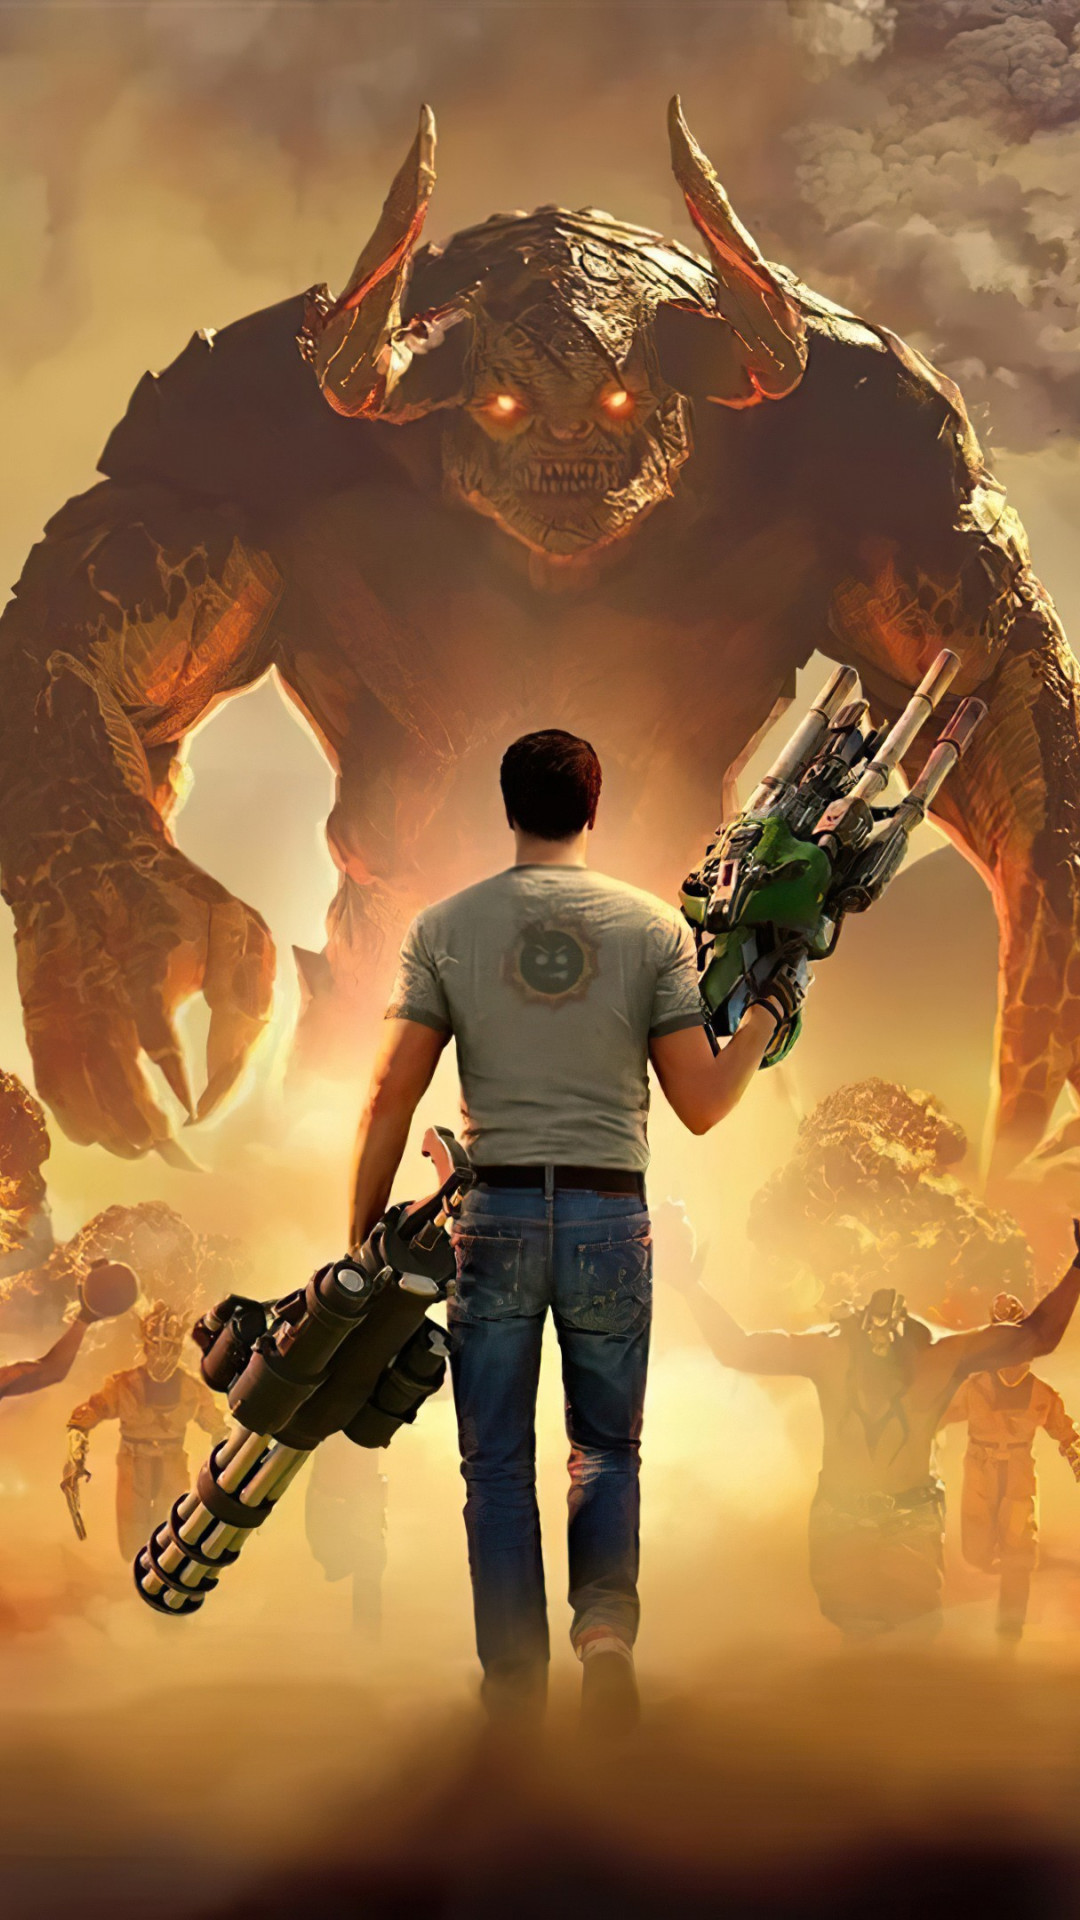 Serious Sam 4 wallpaper 1080x1920